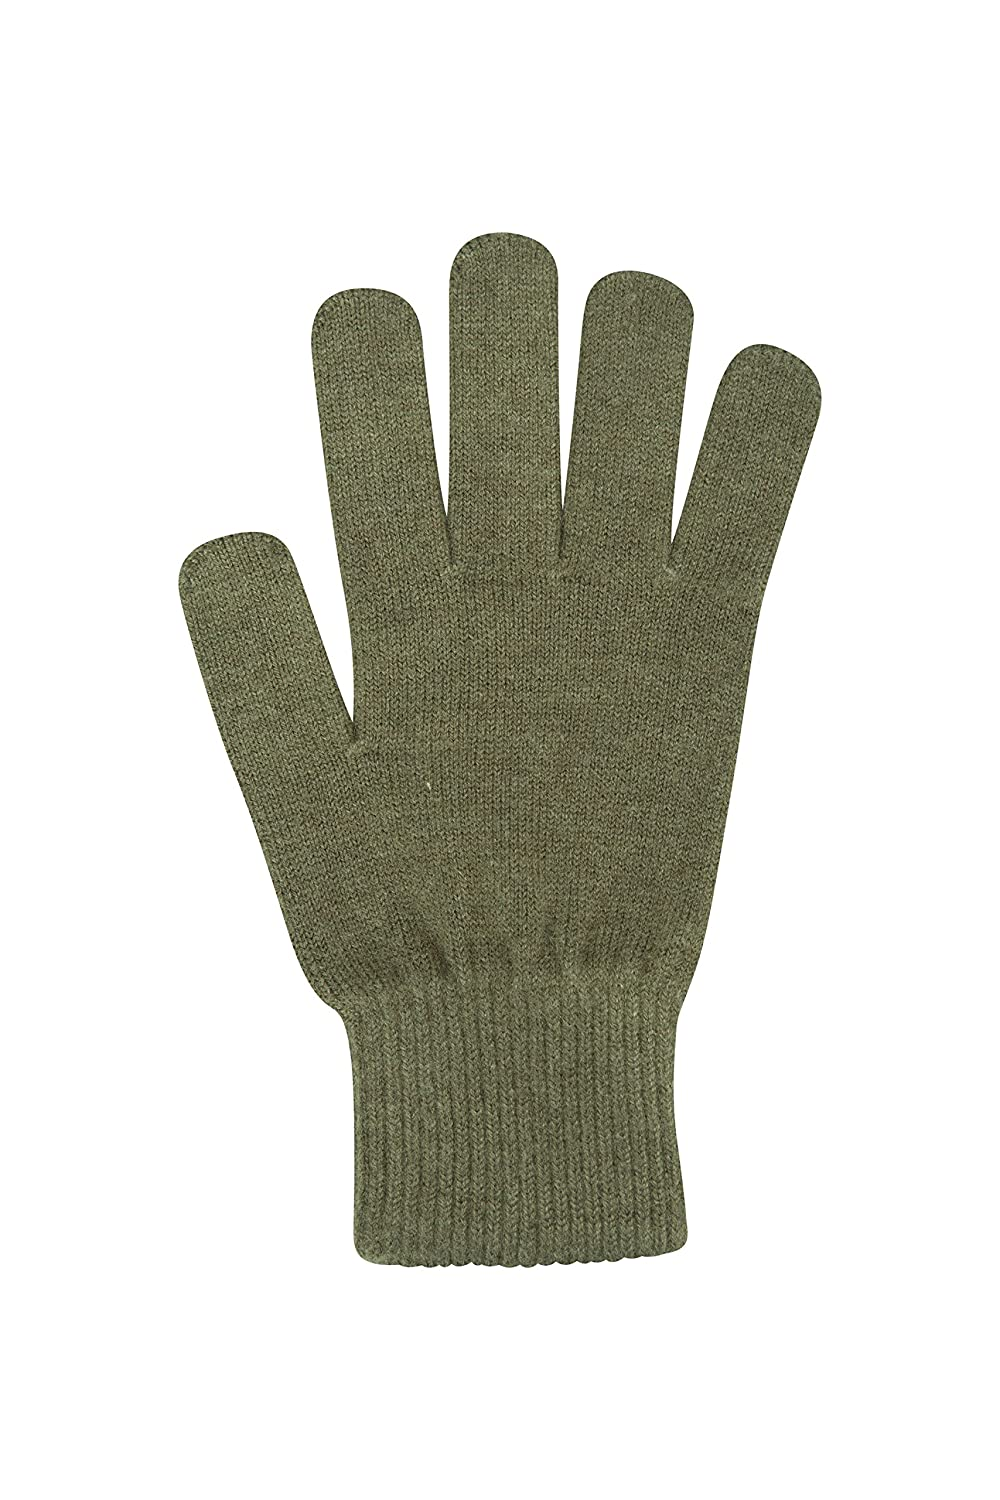 Mountain Warehouse Grace Women's Knitted Gloves - Warm & Cosy & Knitted Fabric, Soft Feel & Heat Retention Elasticated Cuffs Ideal Fit - Ideal Every Day Black 024750005001